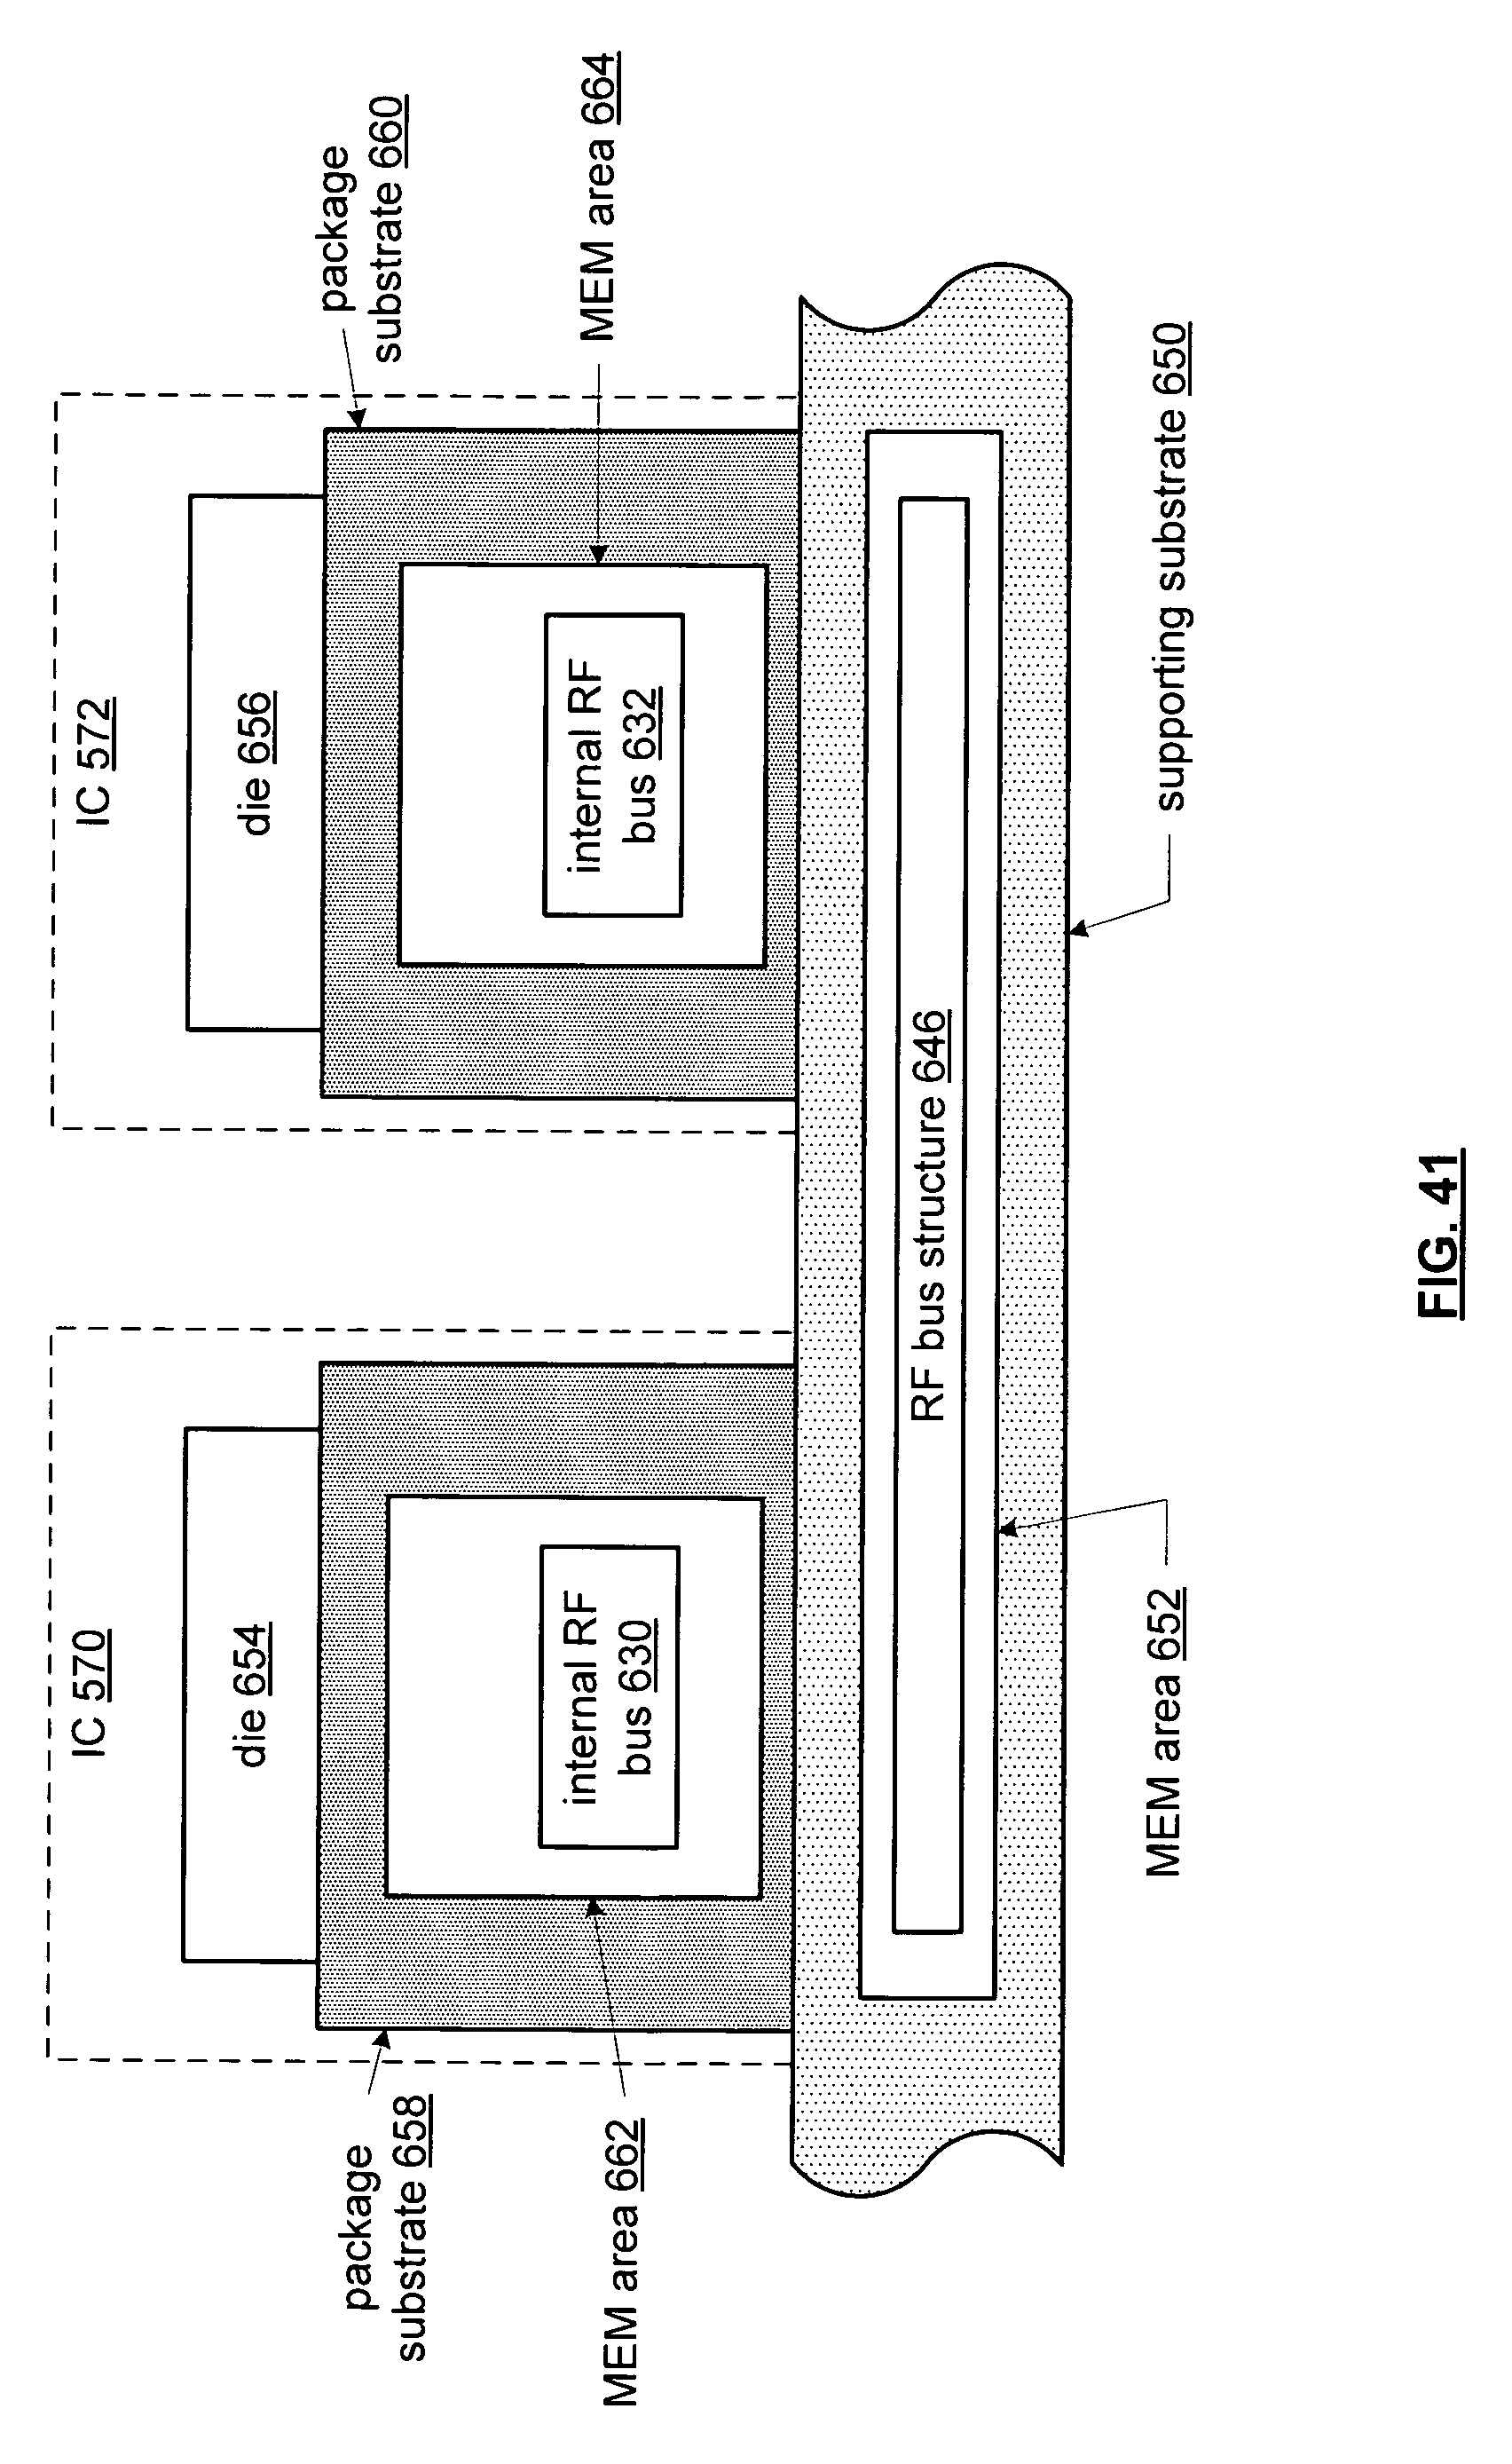 Patent Us20080181252 Rf Bus Controller Google Patents Ic 484 Am Radio Receiver Drawing